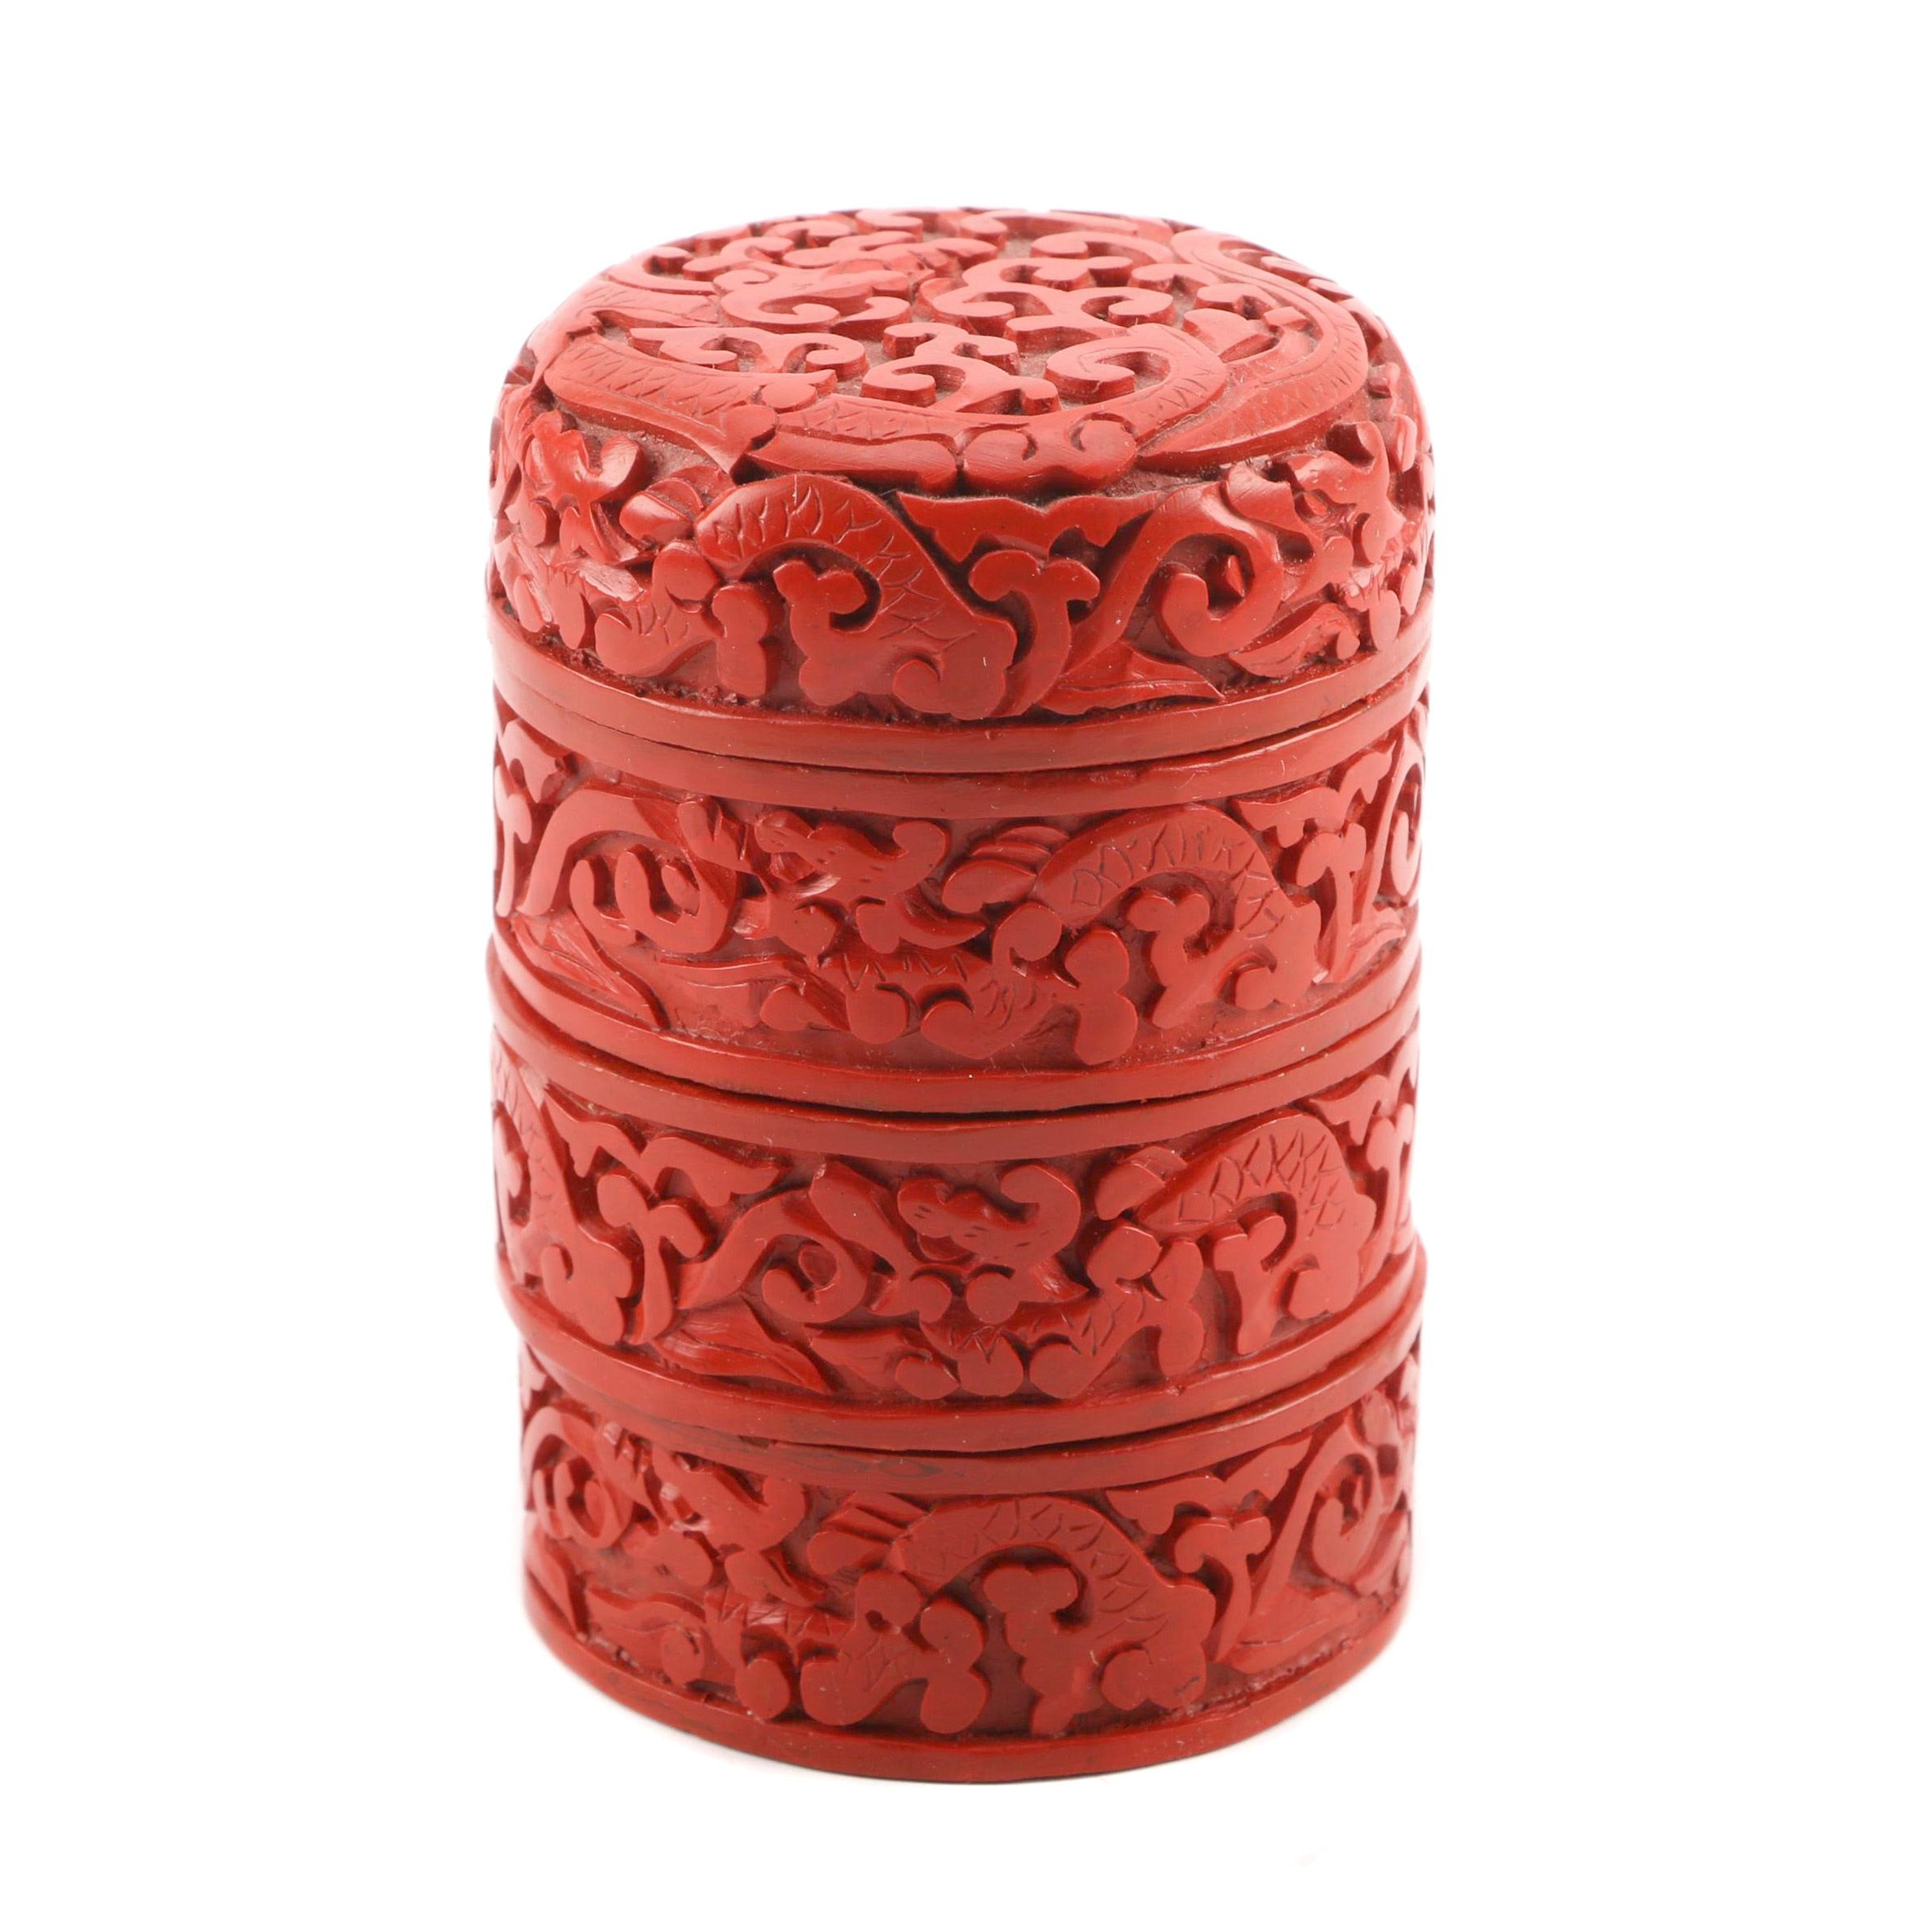 Small Chinese Cinnabar Style Stacking Containers